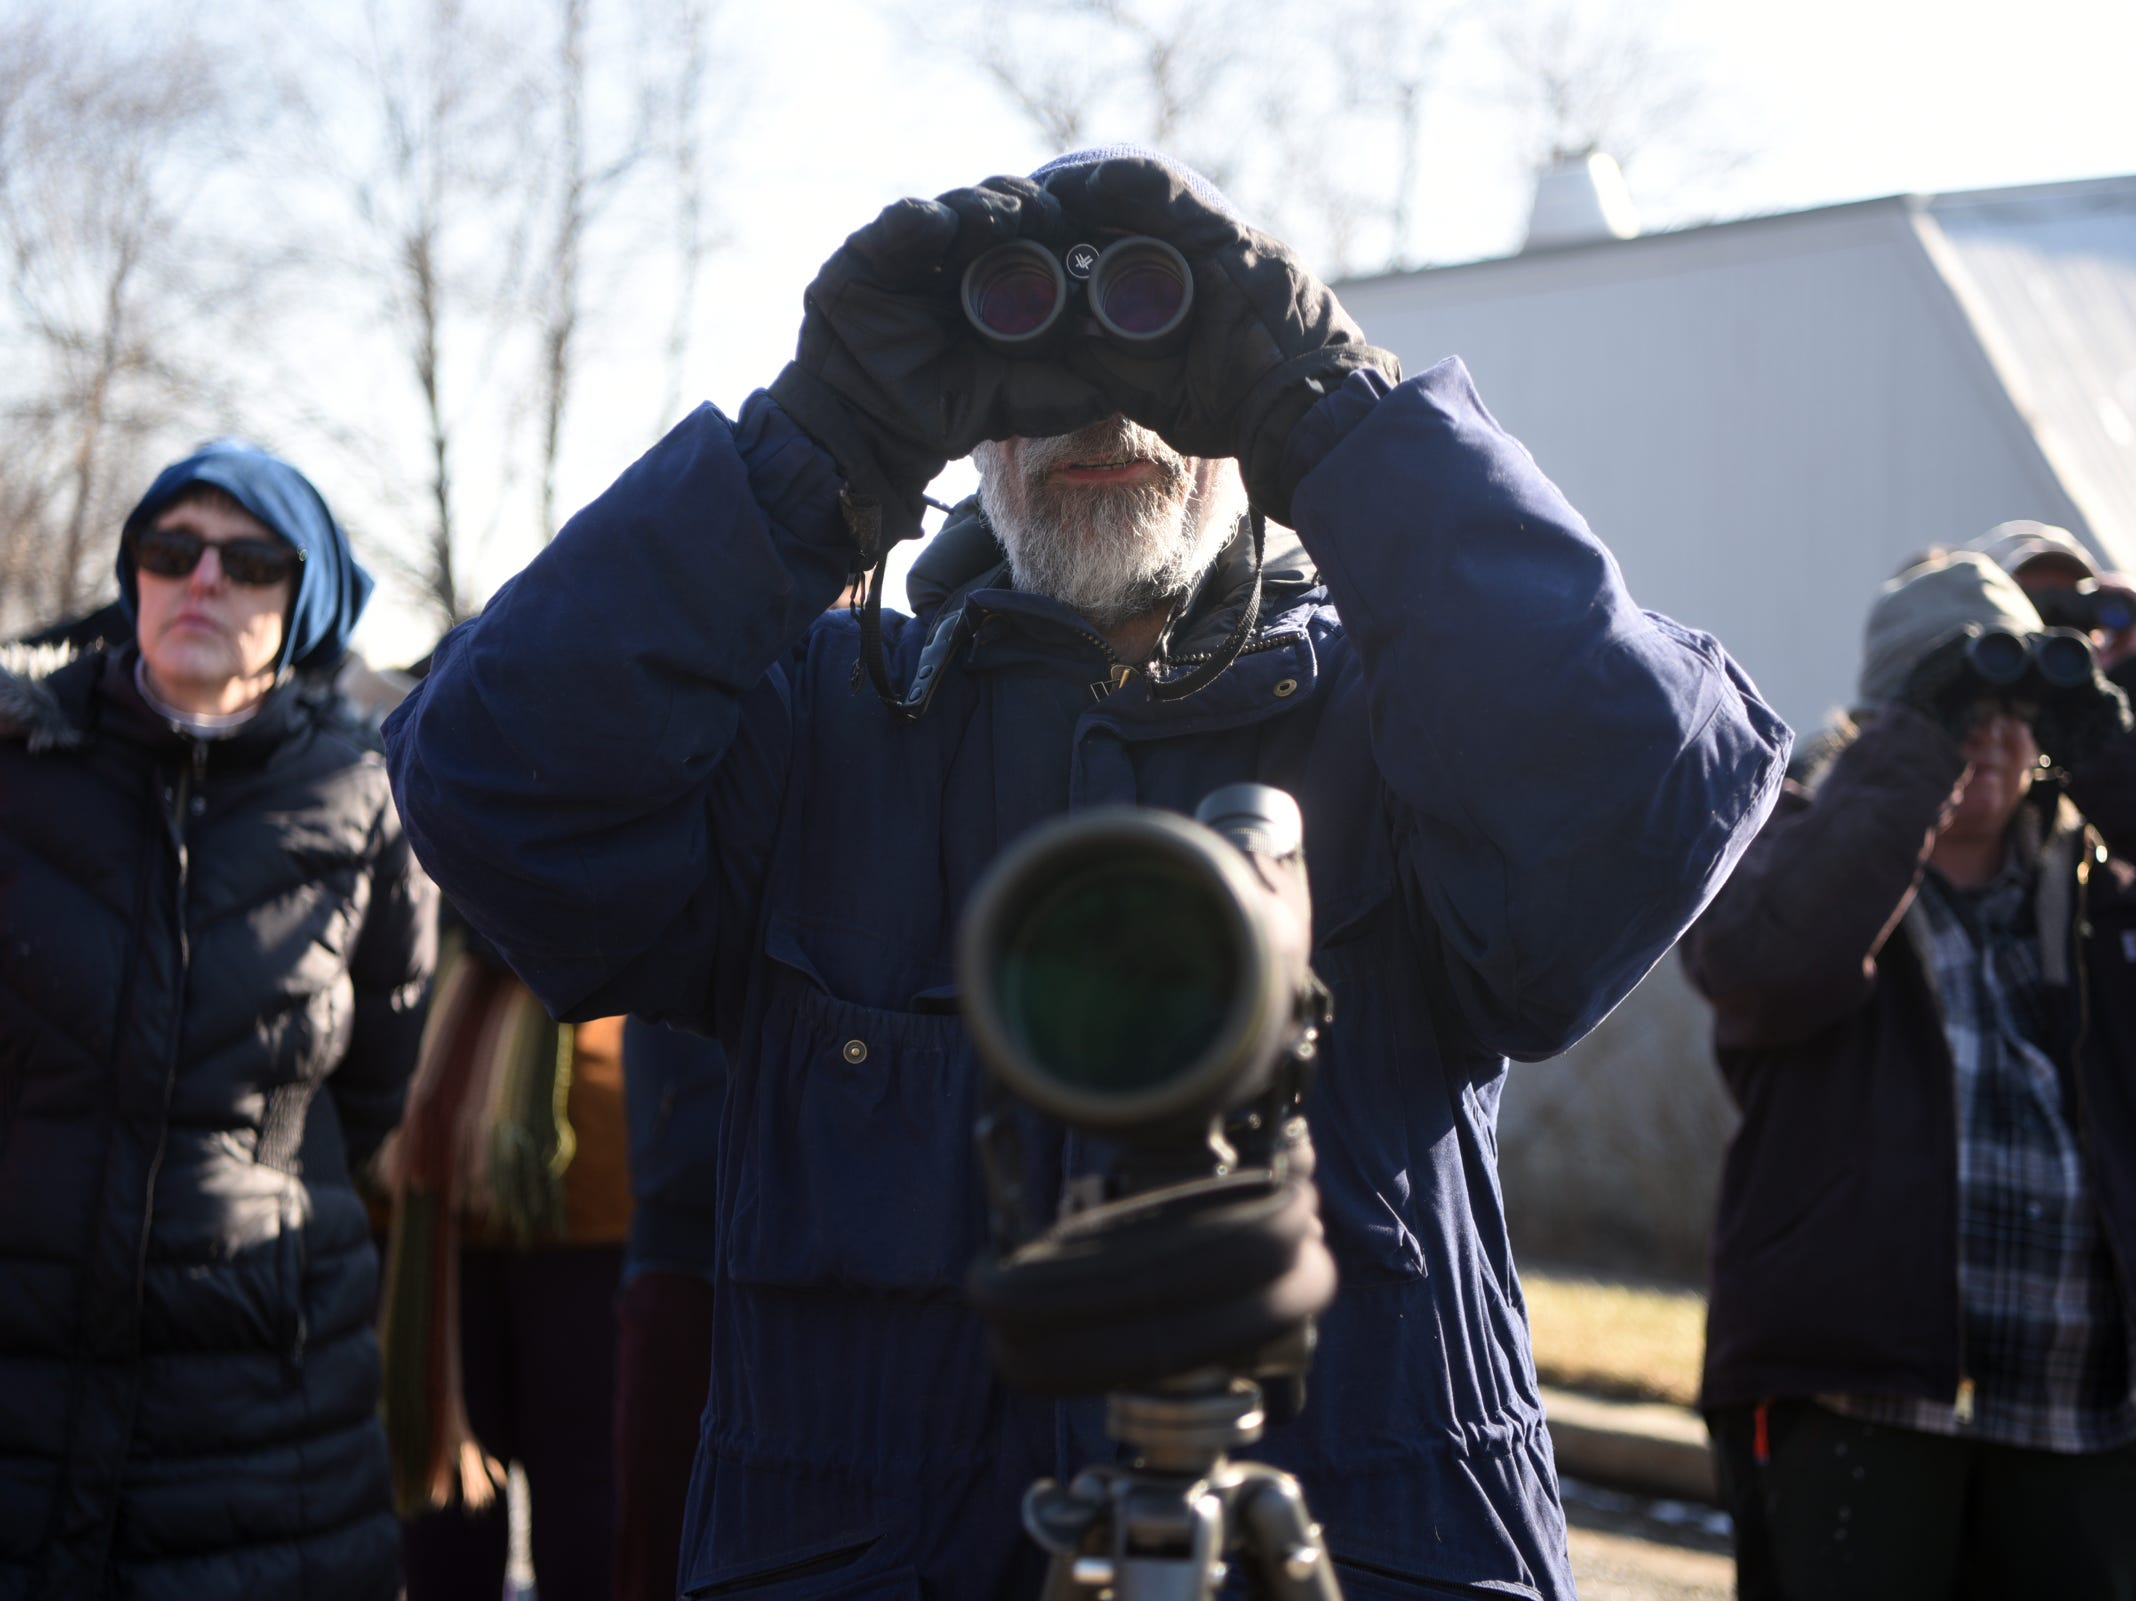 Don Torino, center, president of The Bergen County Audubon Society, led a wintering birds and nature walk at Dekorte Park in Lyndhurst on Sunday, February 3, 2019. Prizes were awarded to the first people to spot birds that are also NFL team names.